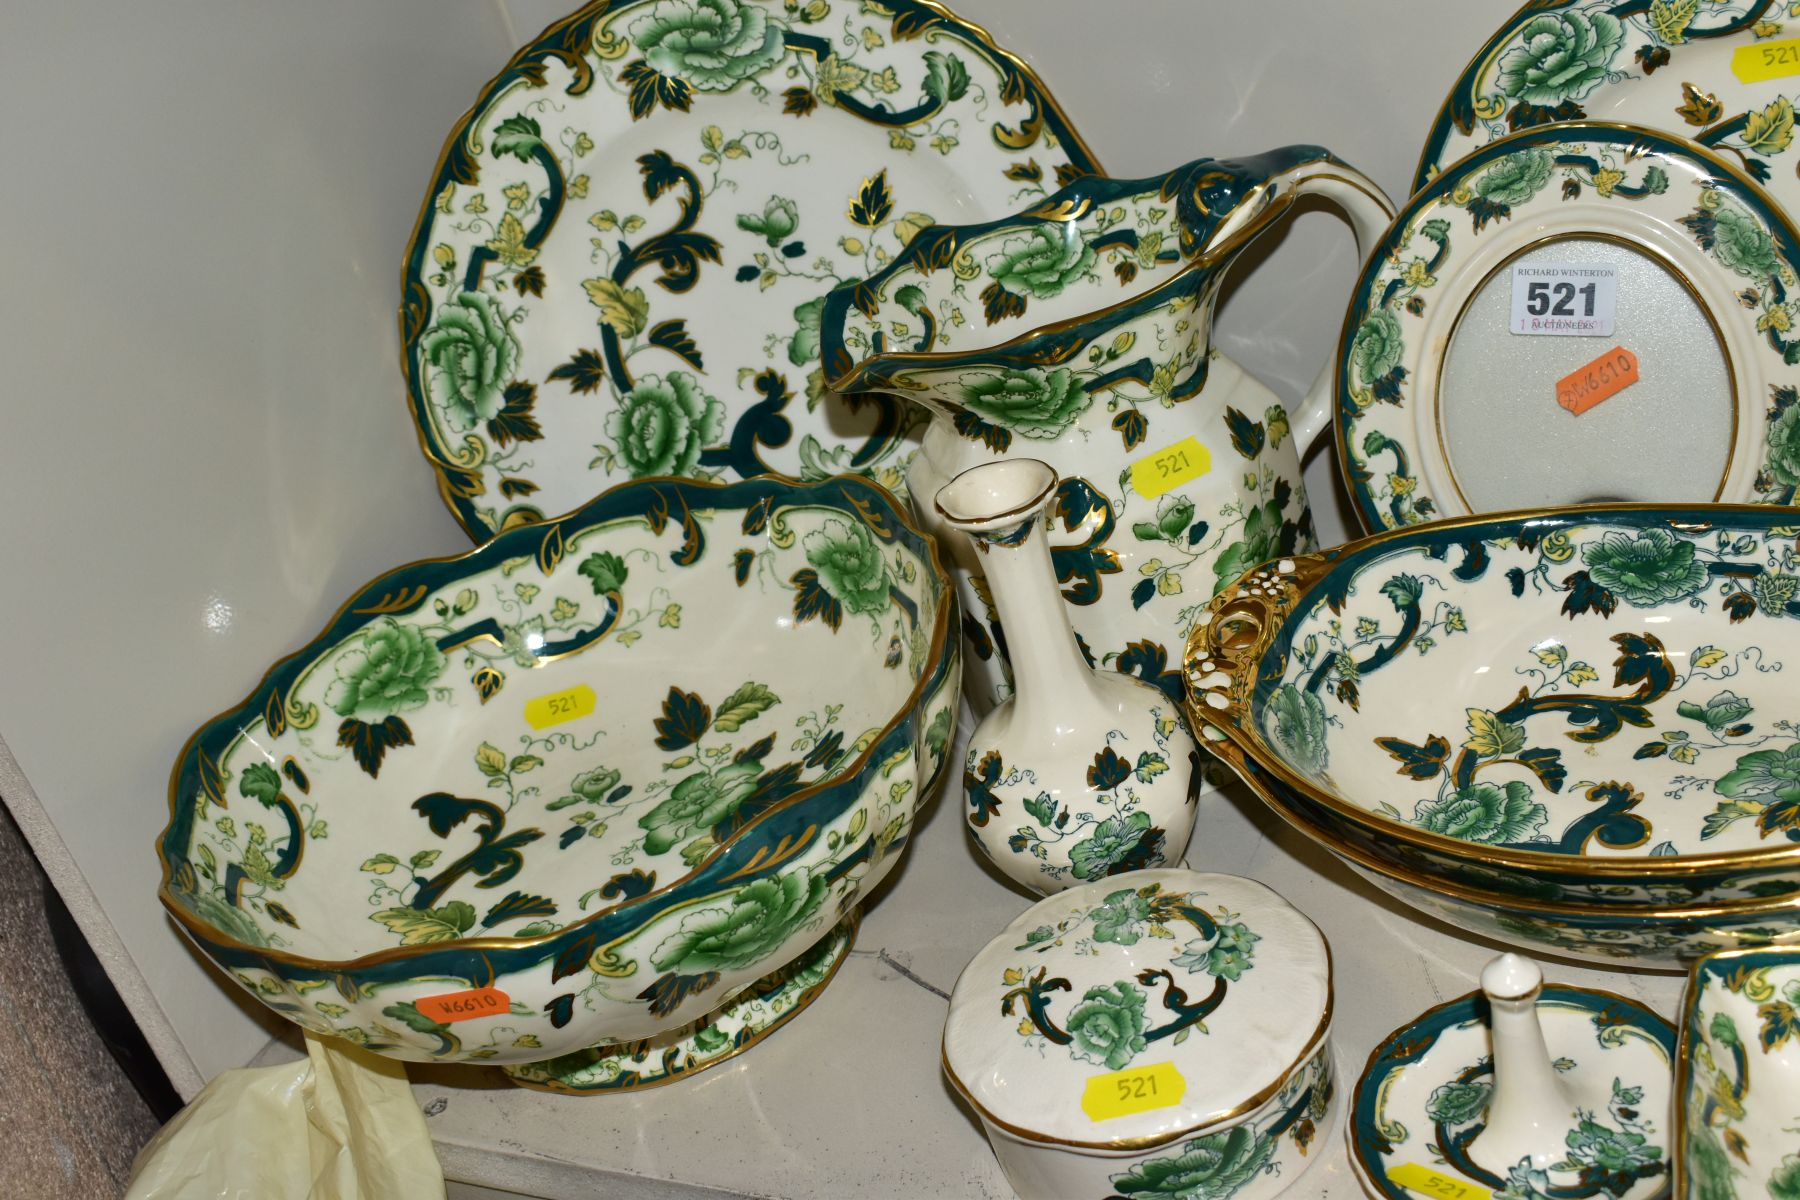 A COLLECTION OF MASONS IRONSTONE 'CHARTREUSE' PATTERN PLATES, JUGS, BOWLS, GINGER JARS, etc, - Image 2 of 7